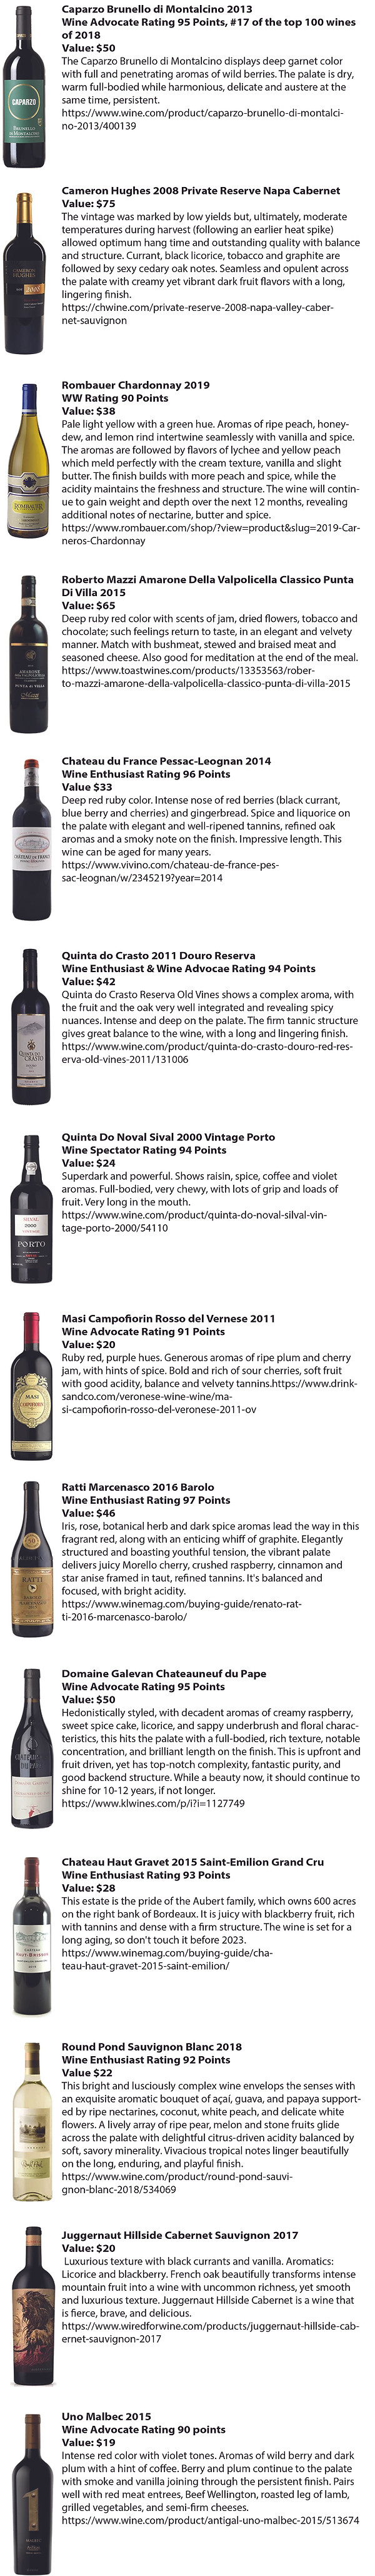 Wines and Text Single2.jpg